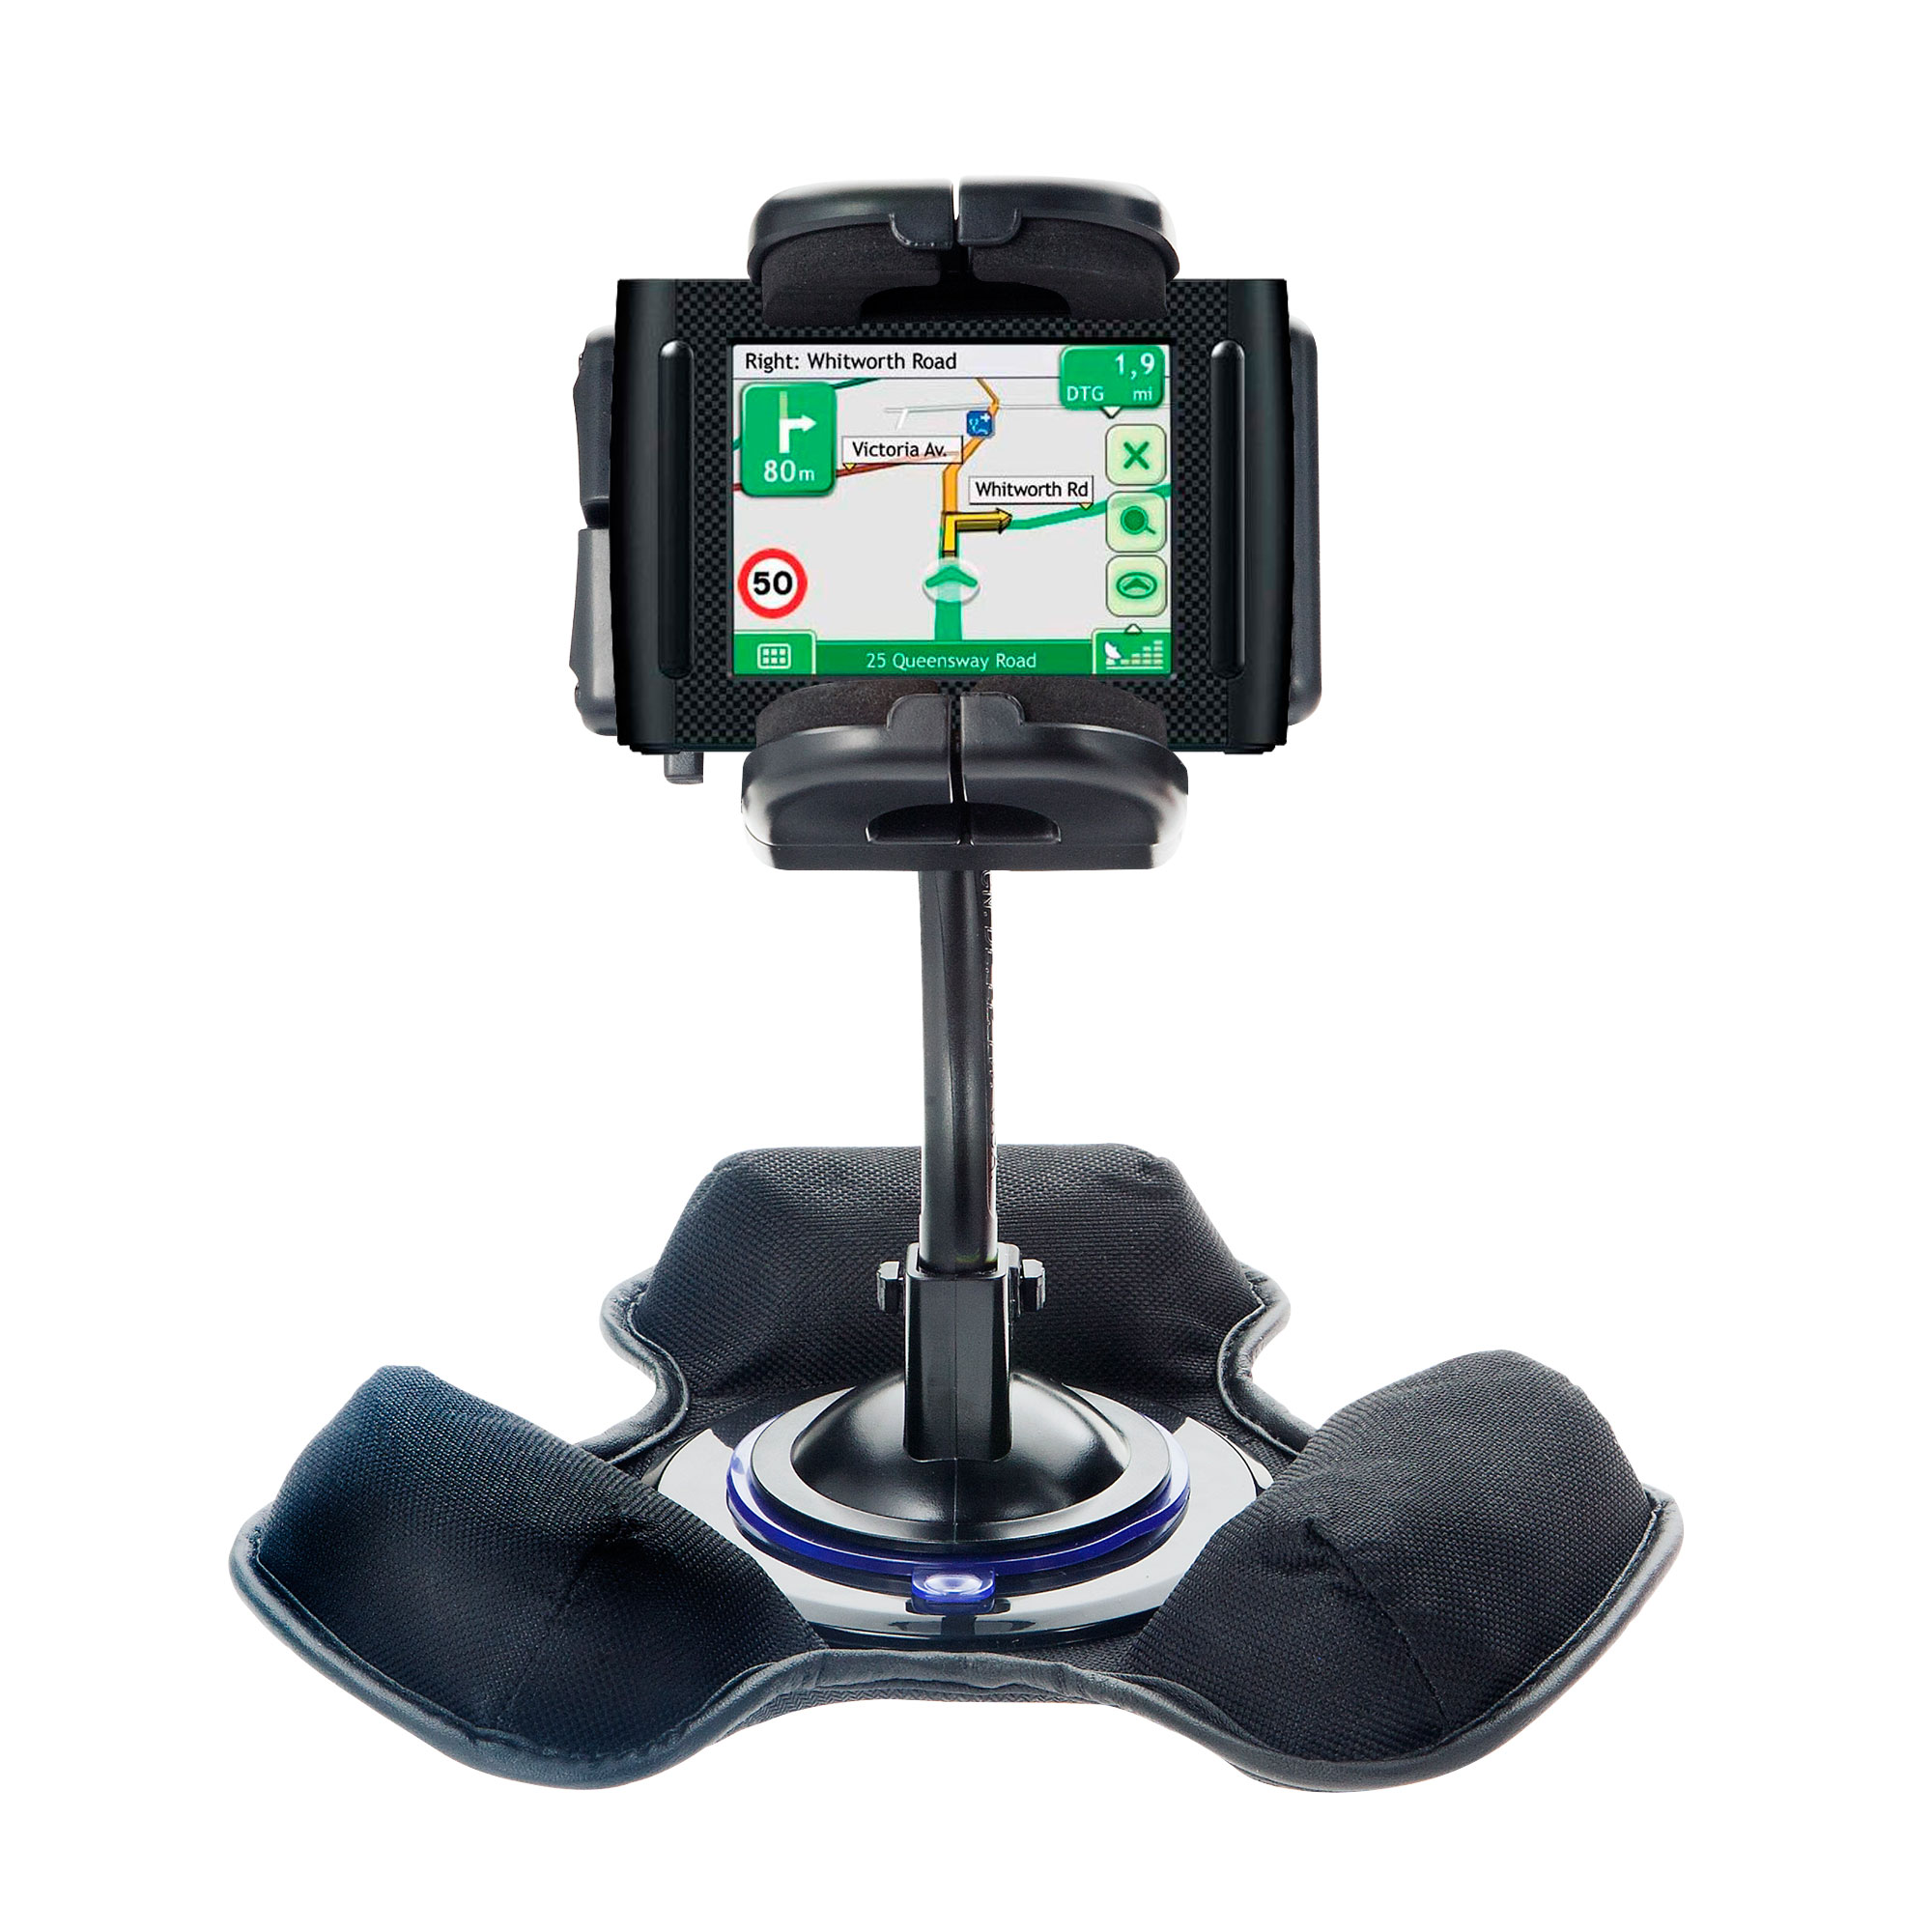 Dash and Windshield Holder compatible with the Navman F35